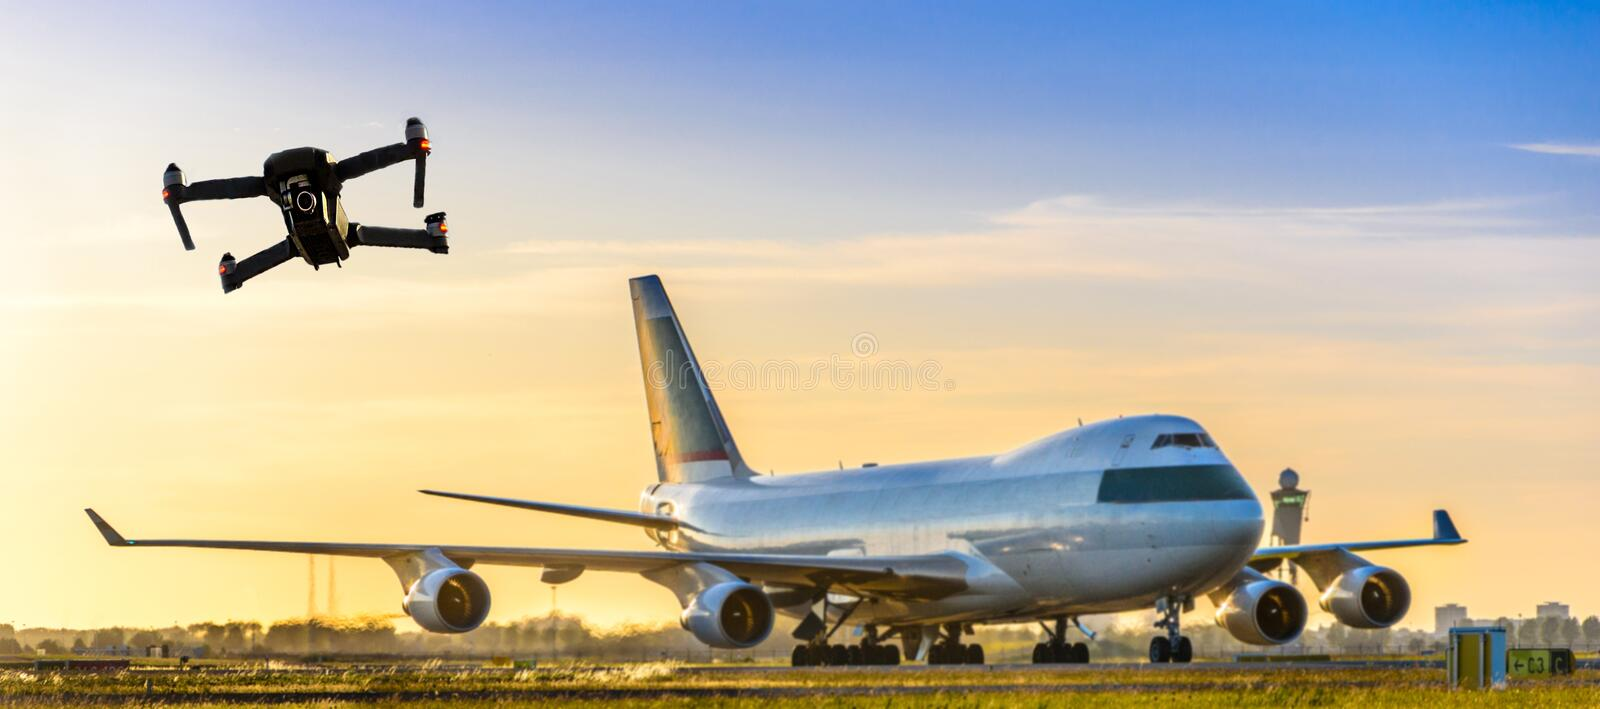 Unmanned drone flying near large commercial airplane at airport - flight disruption concept royalty free stock image